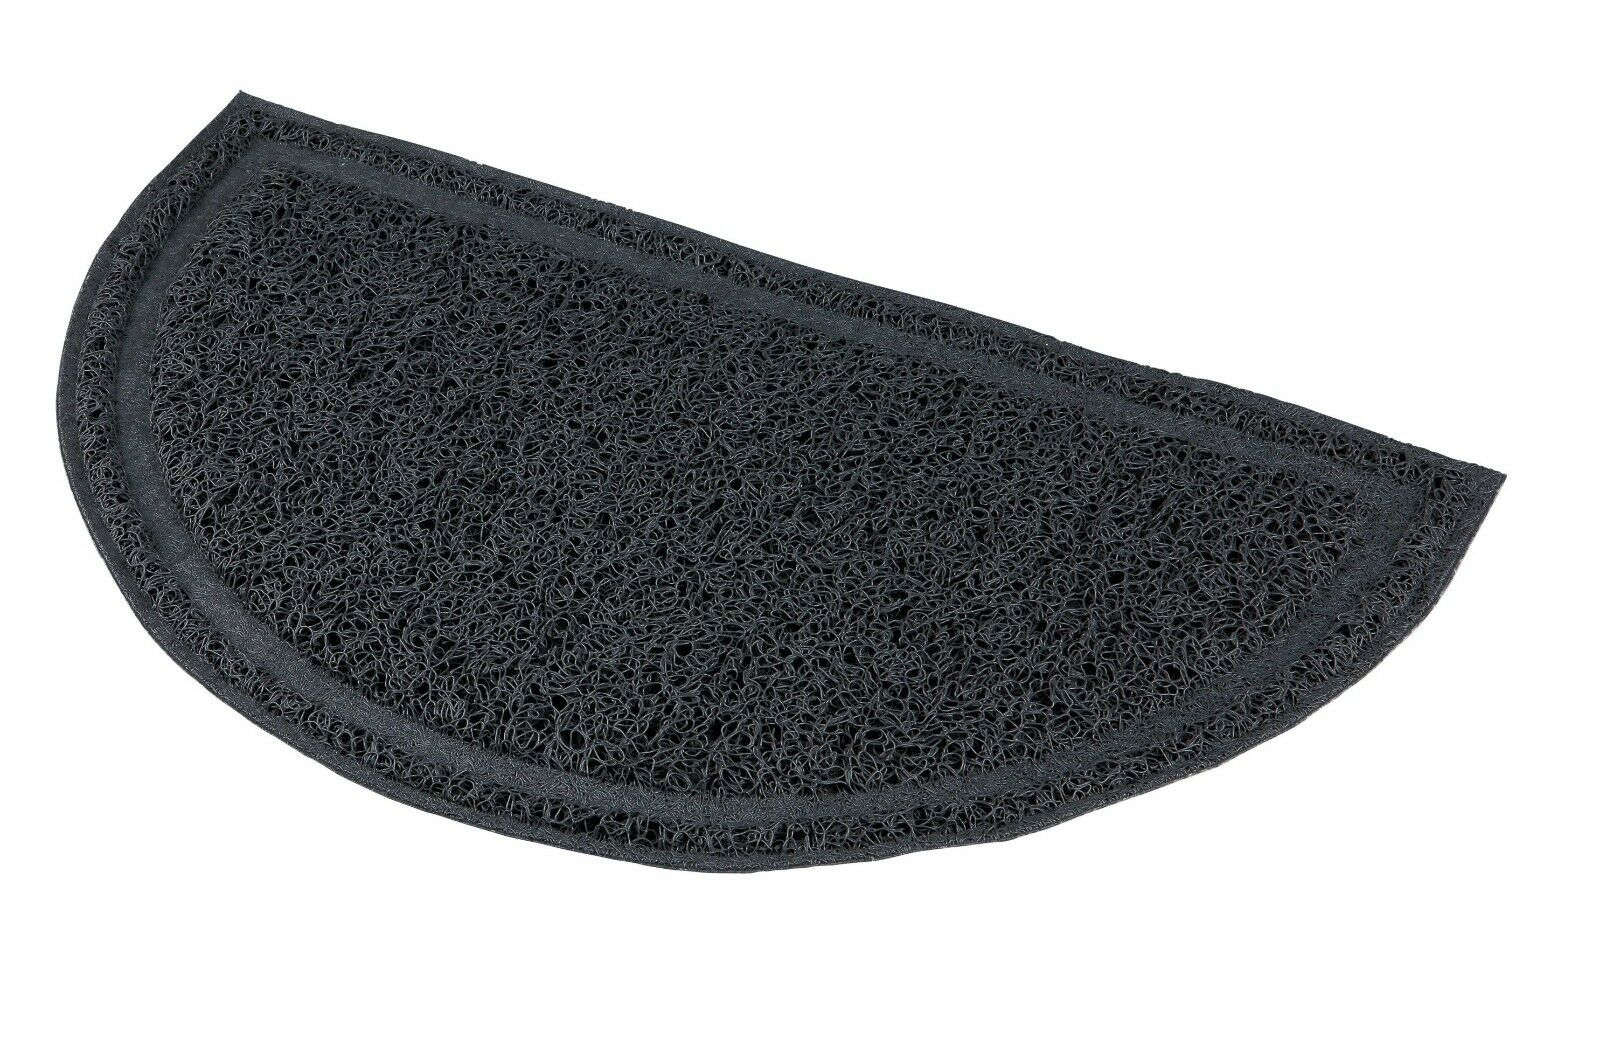 PVC Non Slip Litter Tray Mat for Removing Cat Litter from Paws